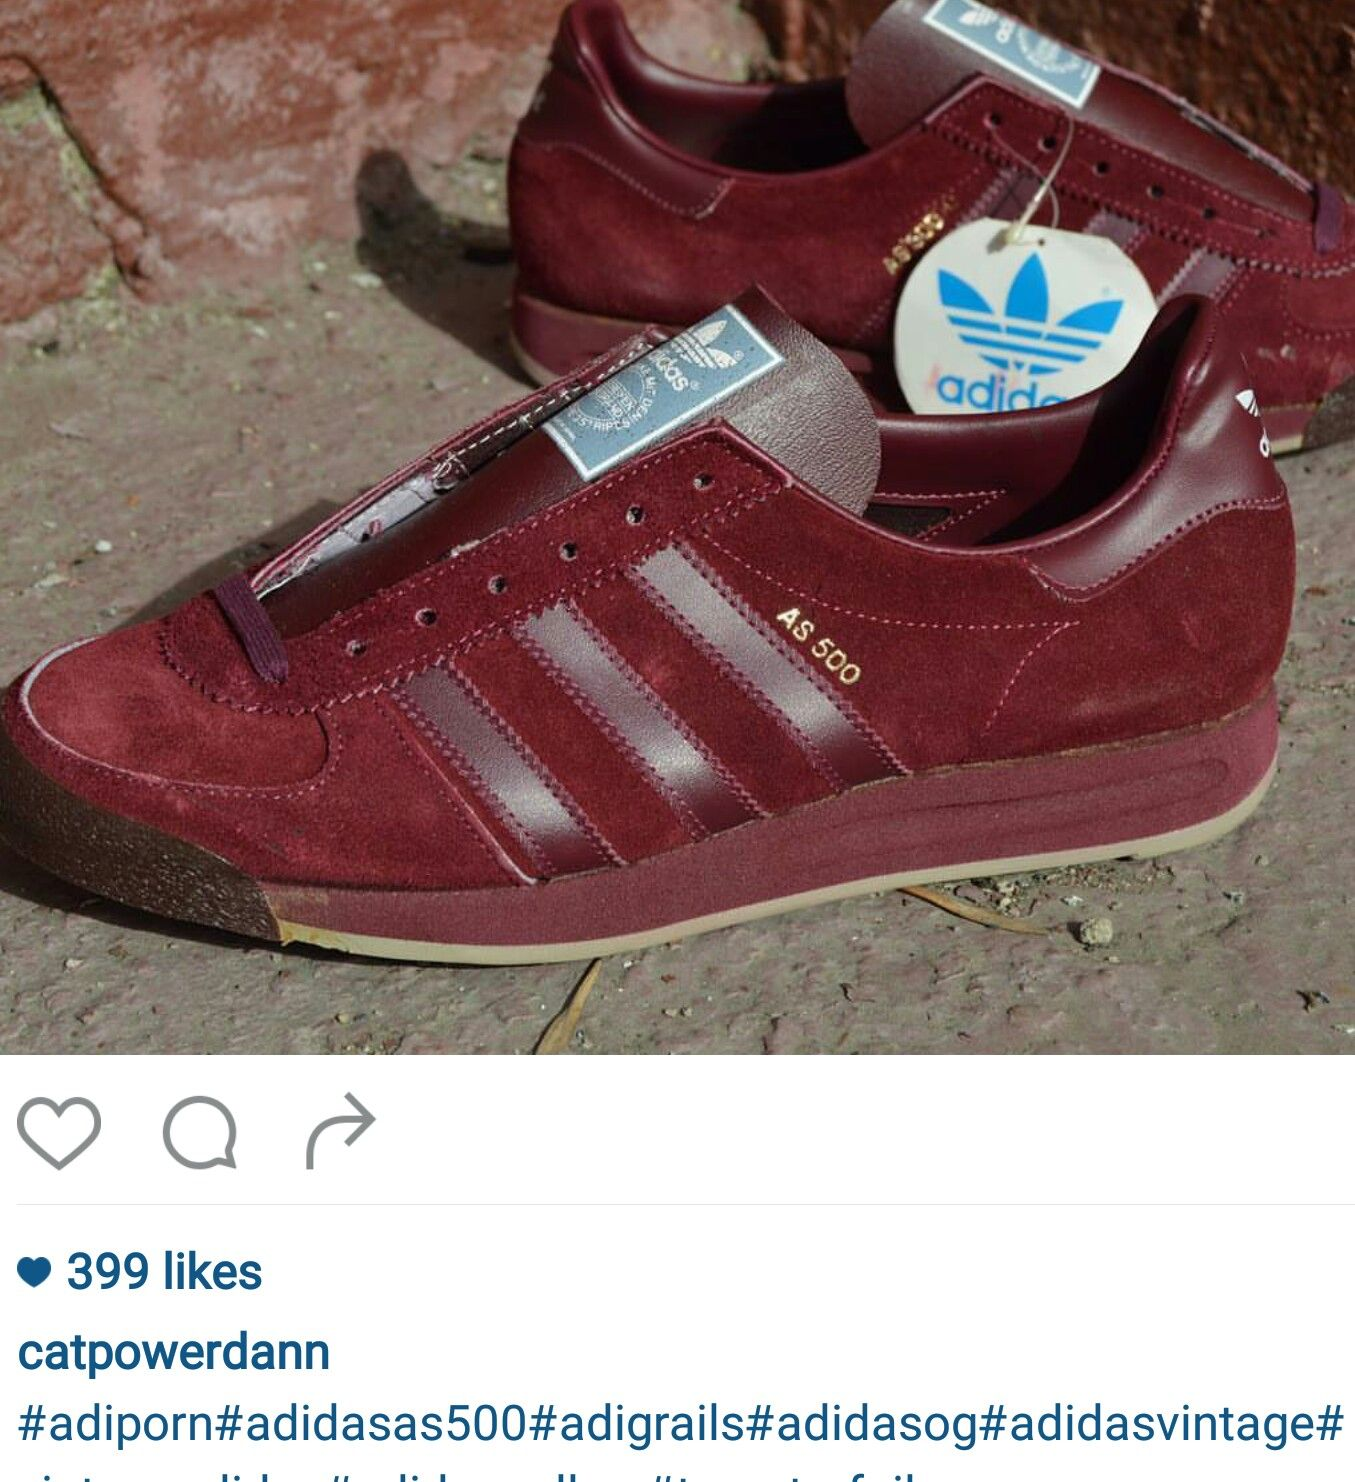 finest selection 2750a 8bca6 Adidas Og, Adidas Shoes, Football Casuals, Vintage Adidas, Fashion Boots,  Fashion